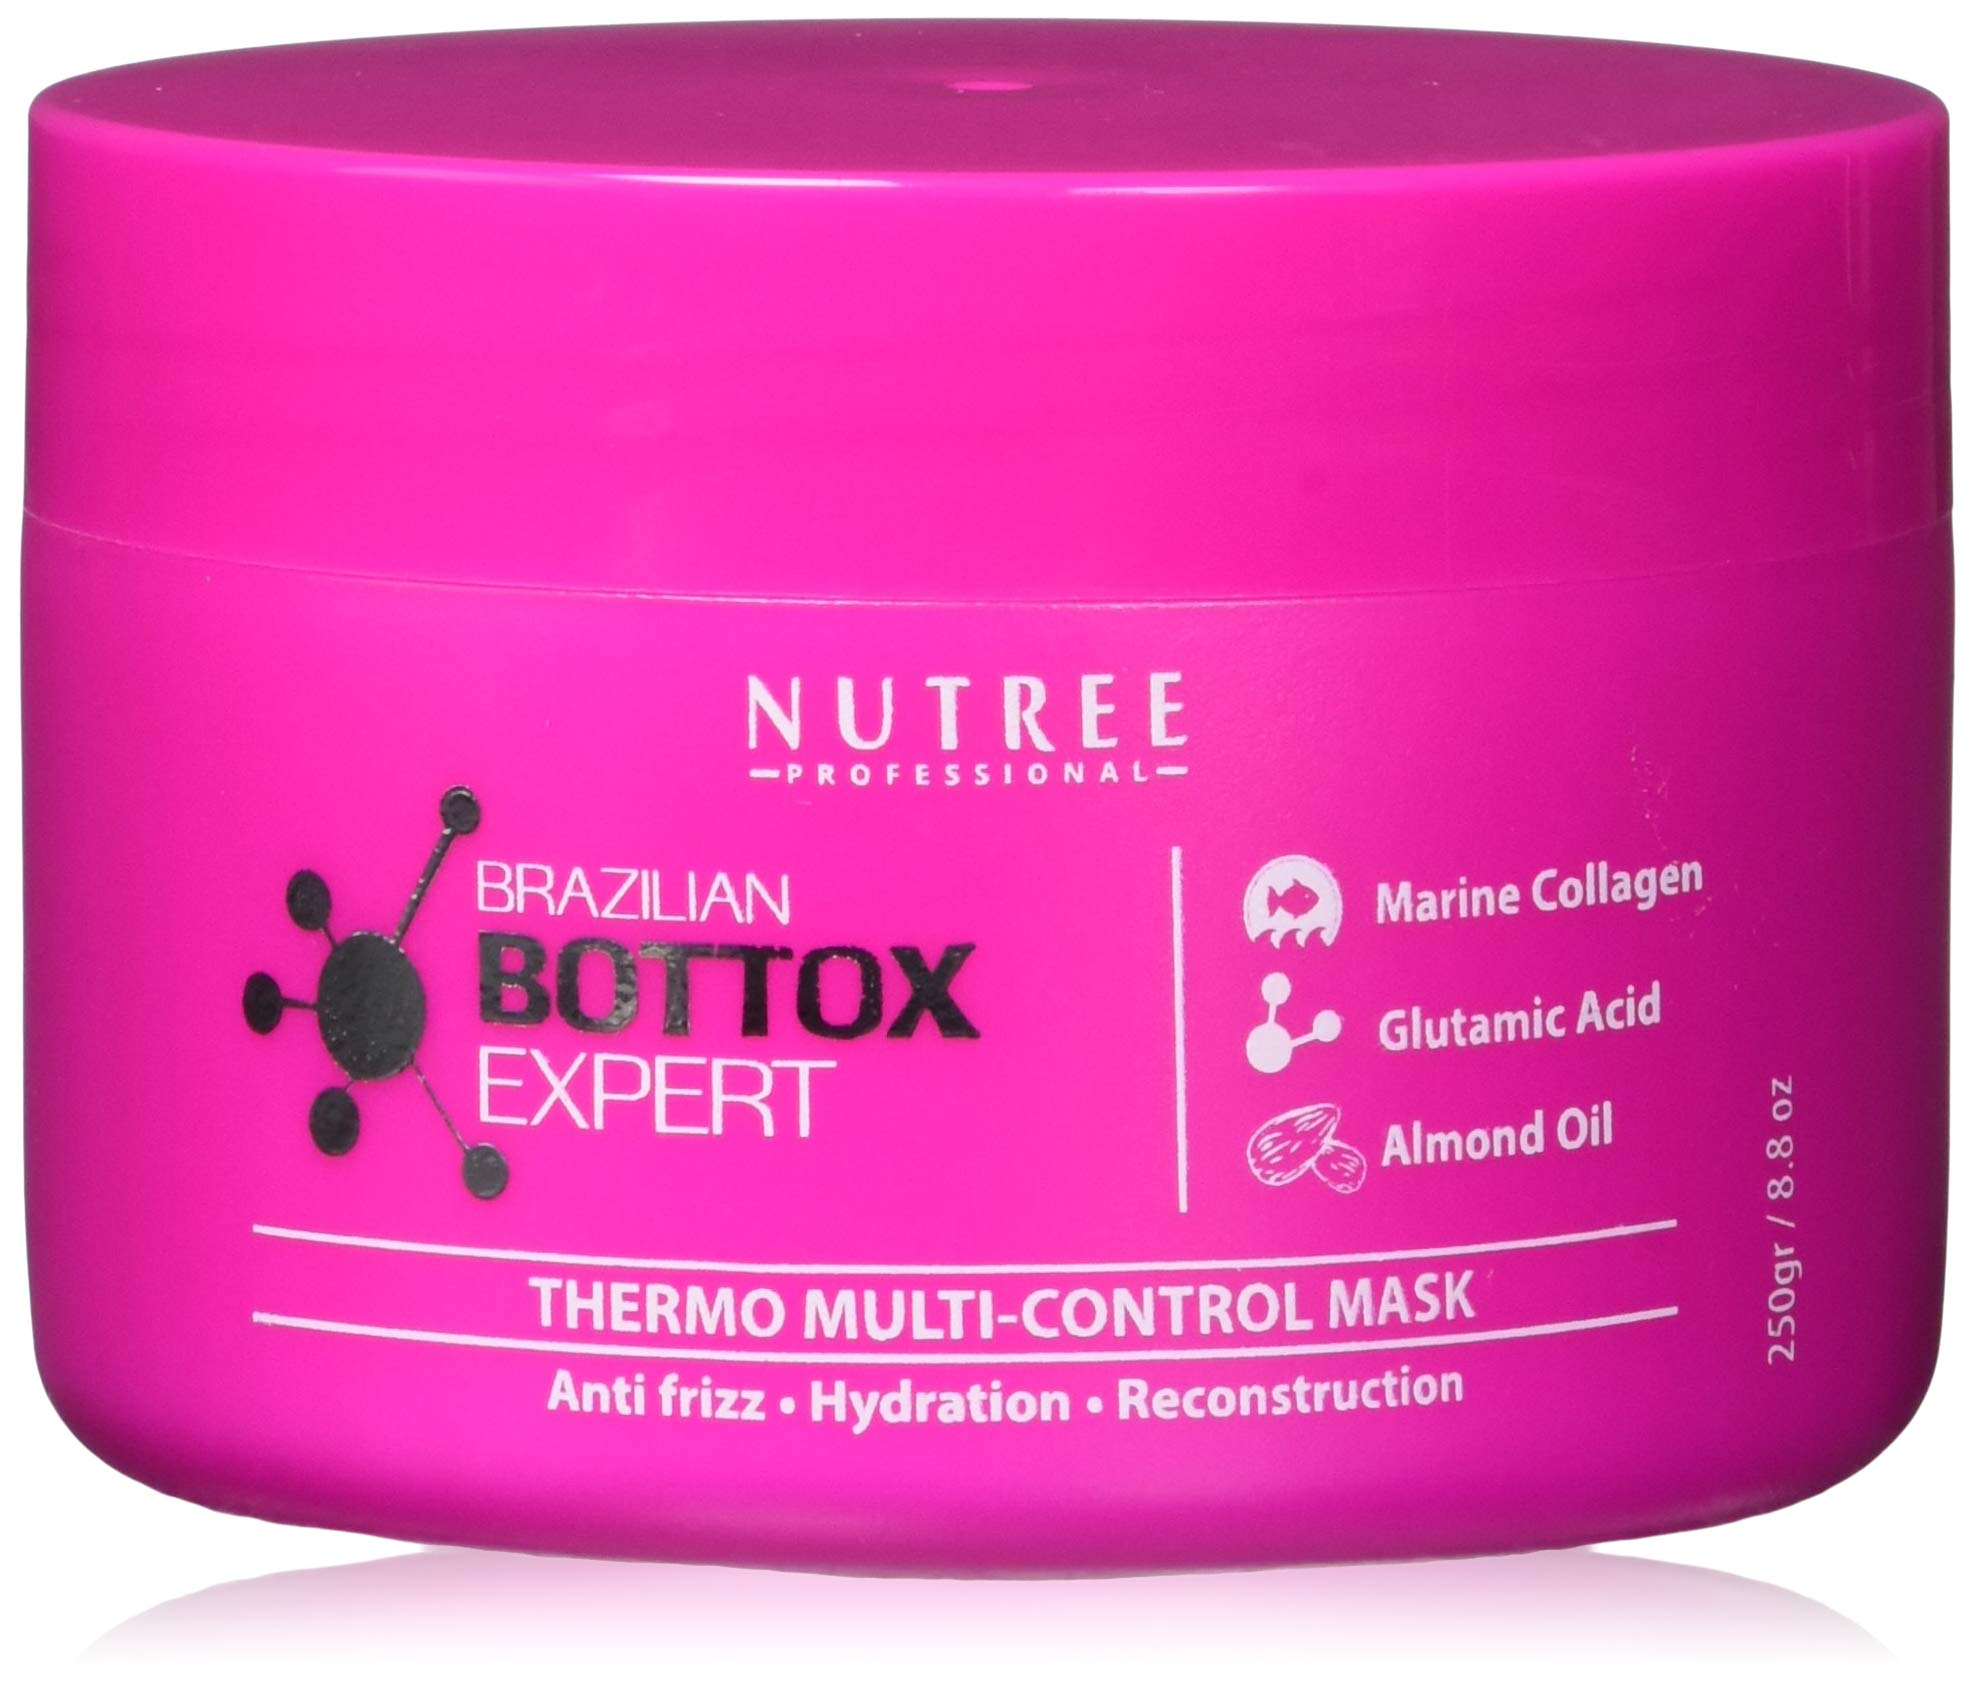 Brazilian Hair Bottox Expert Thermal Mask 8.8 oz - Contains Marine Collagen and Almond Oil - Formaldehyde-Free - Repairs the Hair Elasticity and Flexibility, Softens, Moisturizers, Adds Shine by Nutree Professional (Image #1)